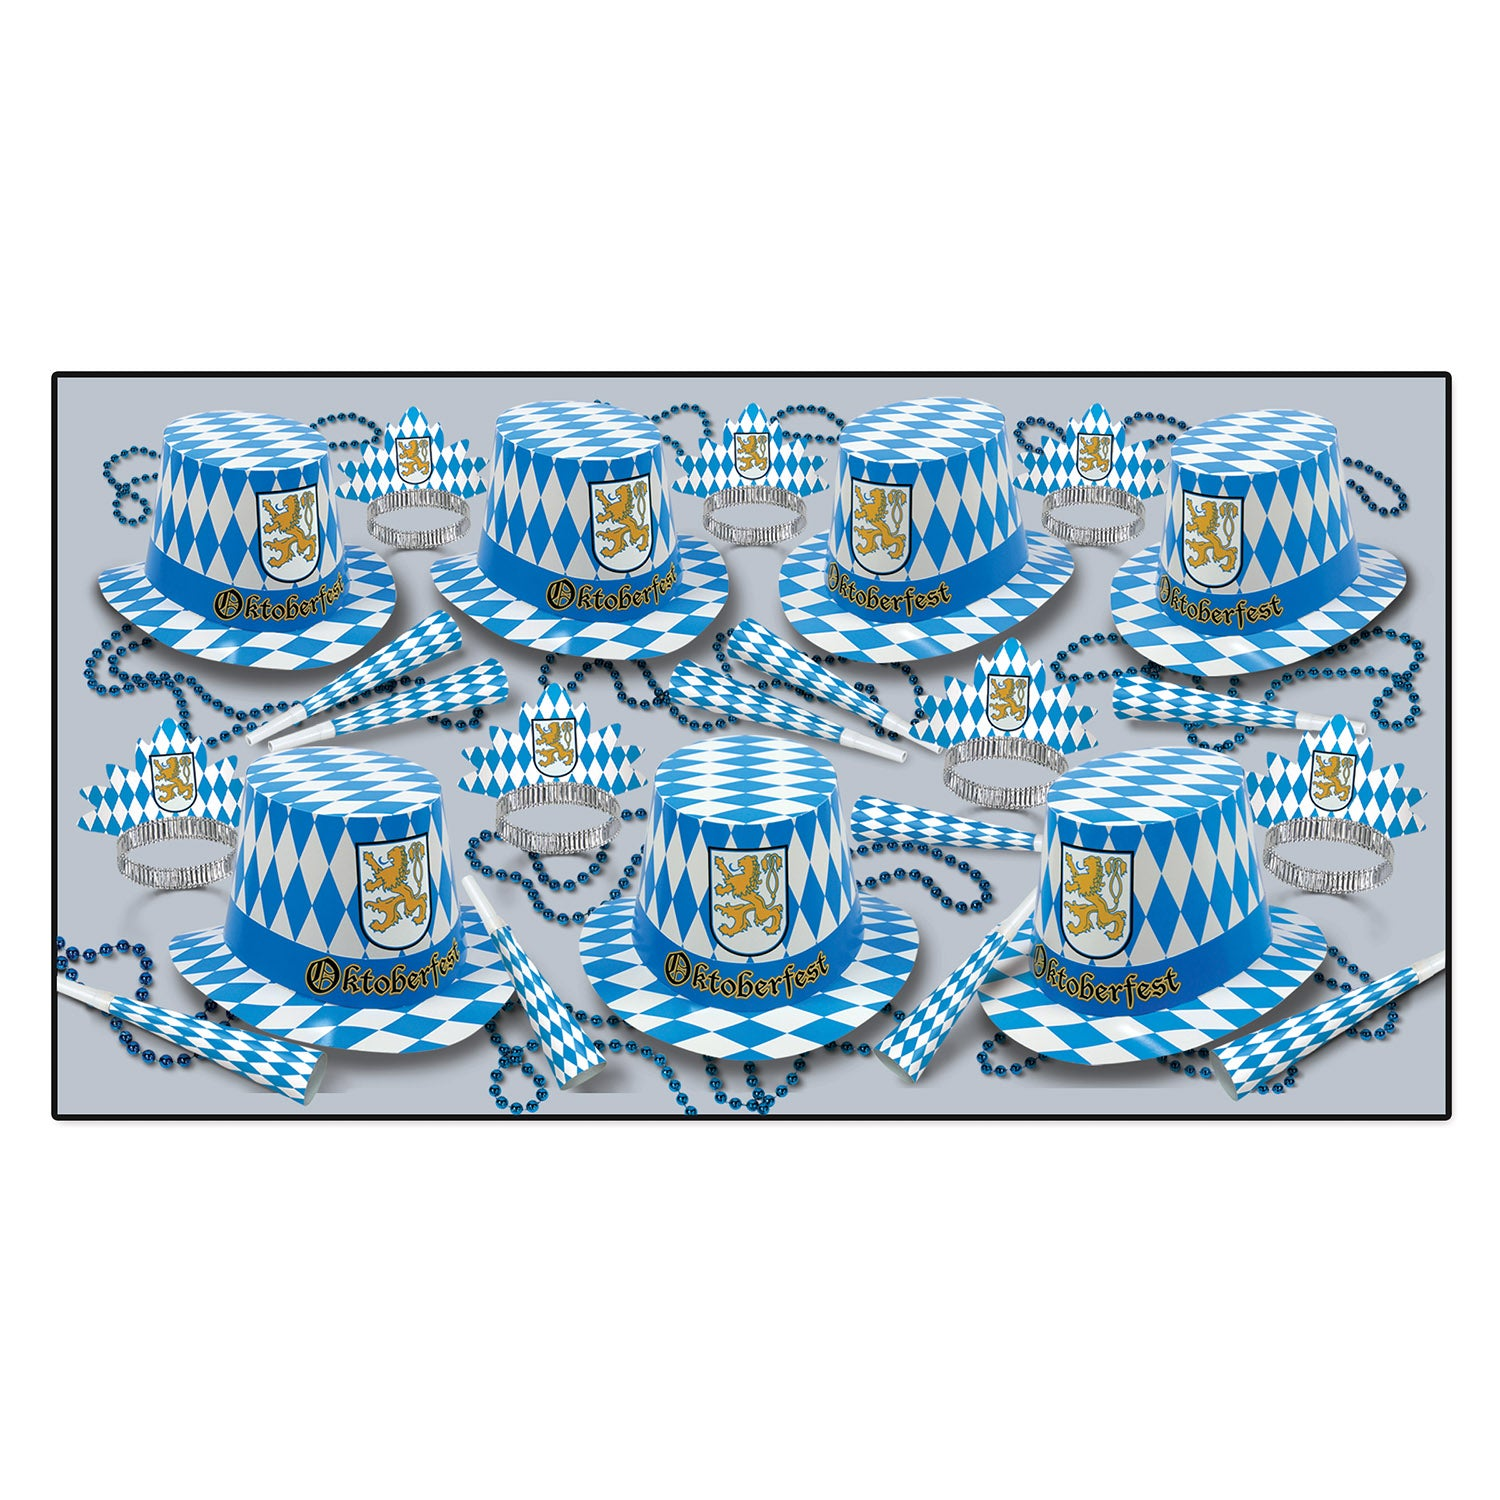 Oktoberfest Assortment for 50 people by Beistle - Oktoberfest Theme Decorations